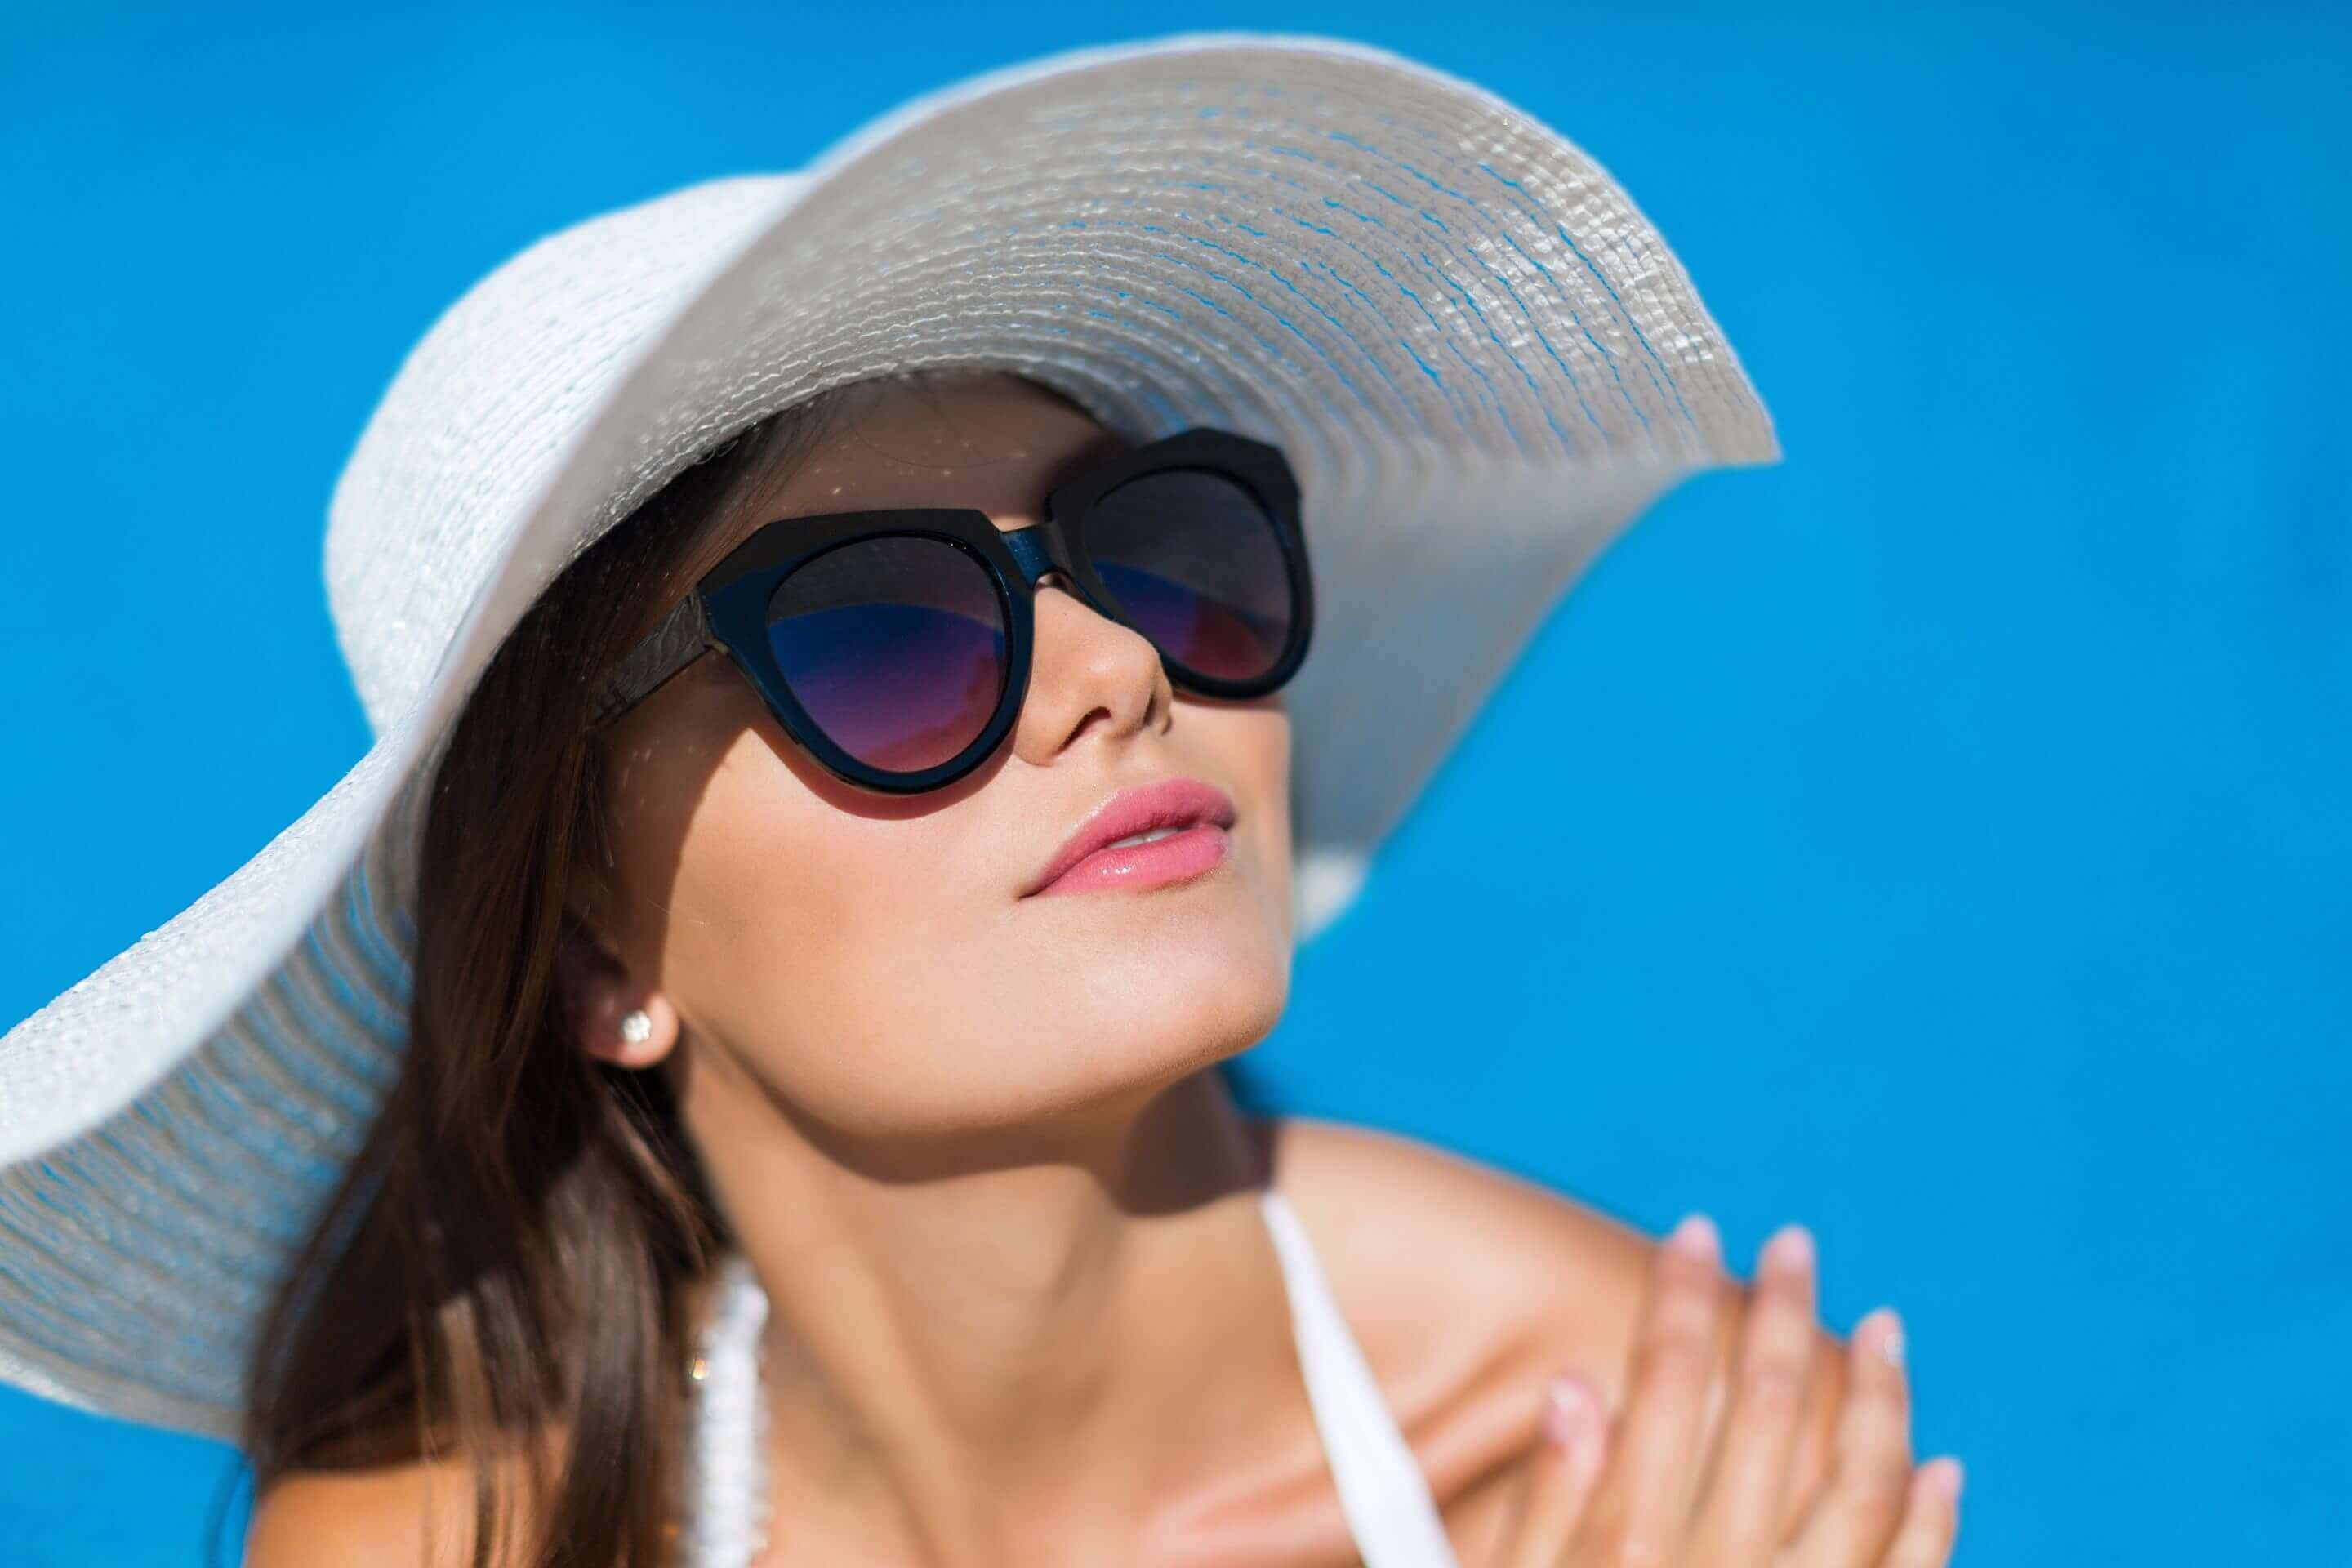 5 Benefits to Wearing Sunglasses